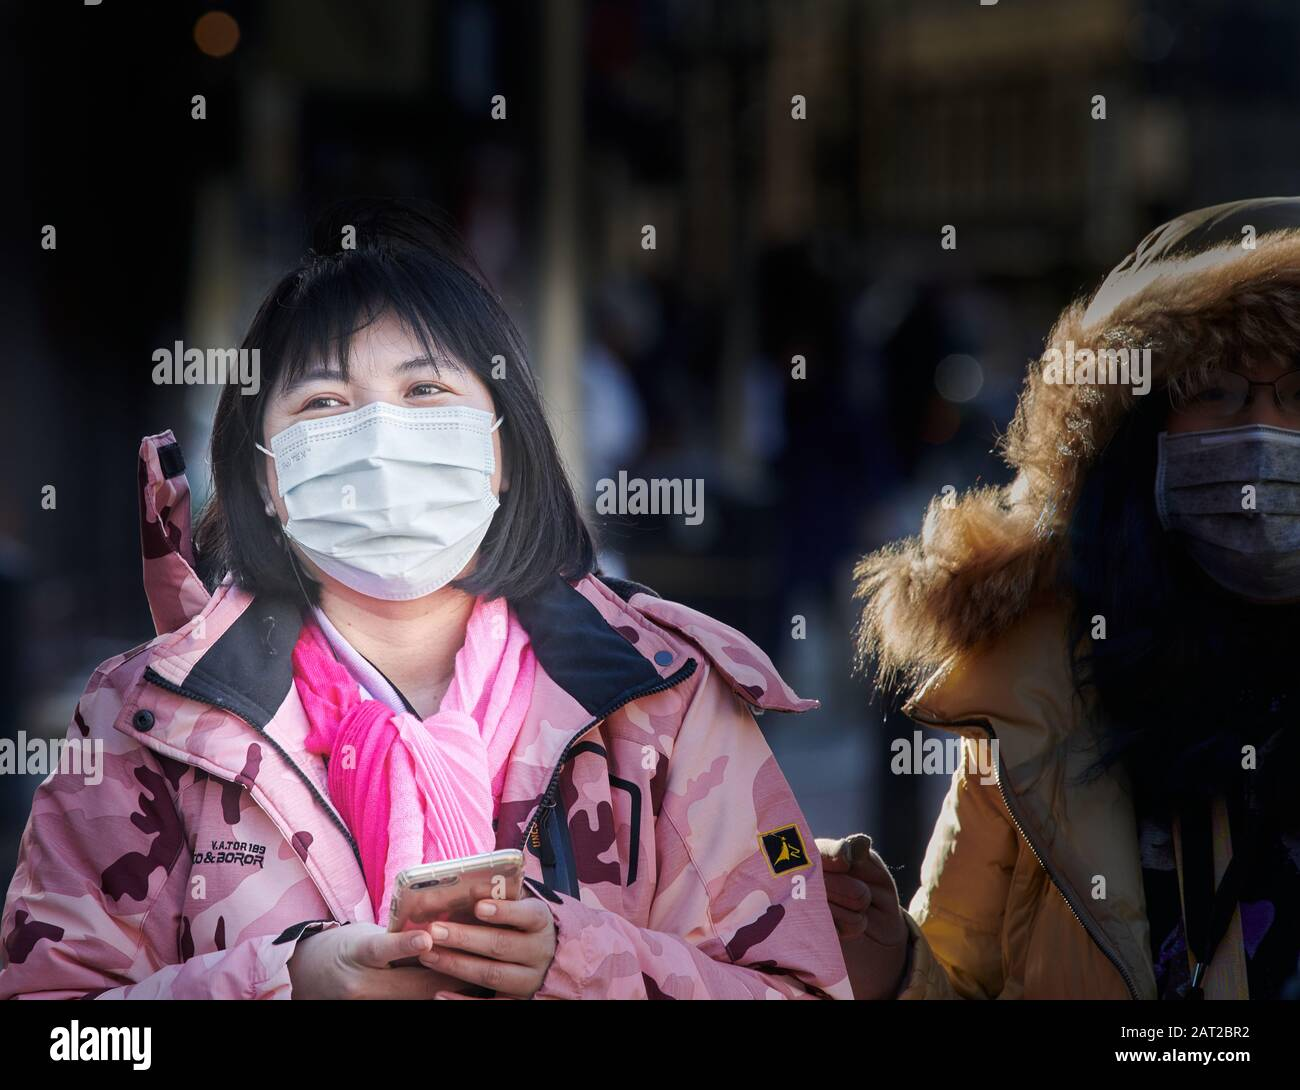 Face mask worn by a chinese tourist outside the railway station in Cambridge, England, on 30 january 2020, to prevent catching the coronavirus flu. Stock Photo